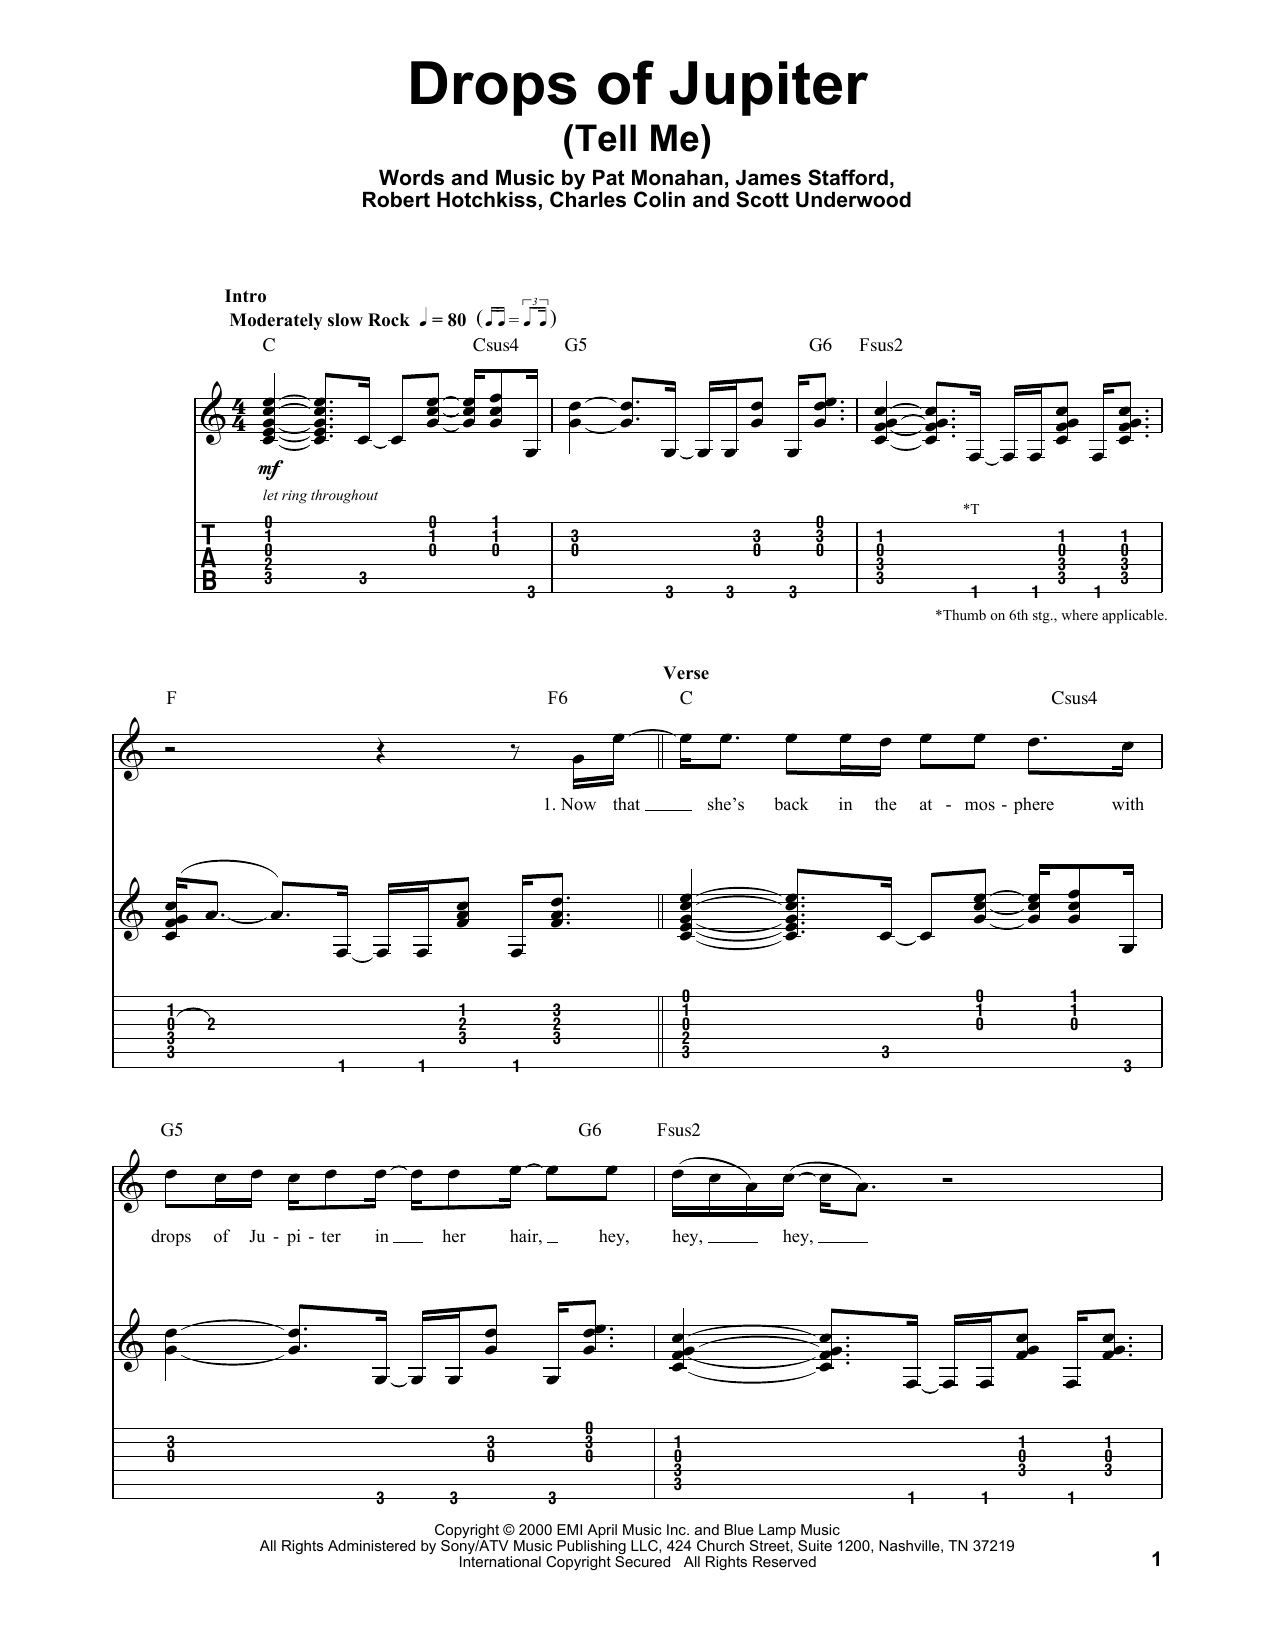 Drops Of Jupiter Chords Train Drops Of Jupiter Tell Me Sheet Music Notes Chords Download Printable Guitar Tab Play Along Sku 177314